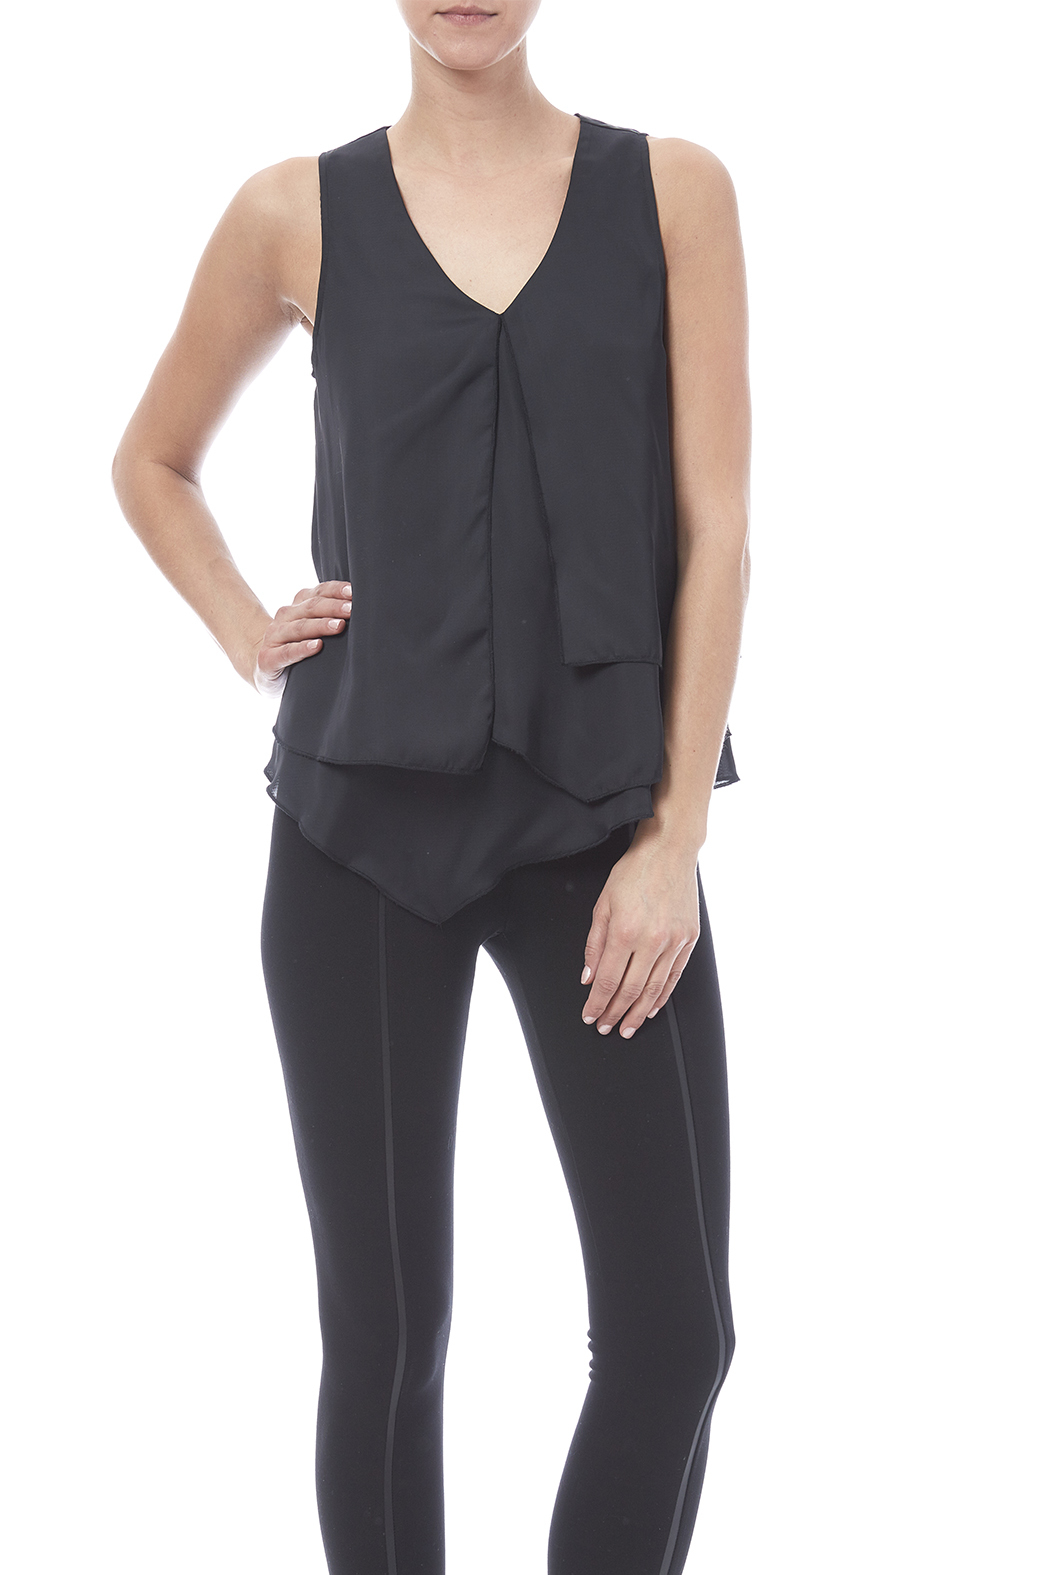 HYFVE Layered Look Blouse - Front Cropped Image